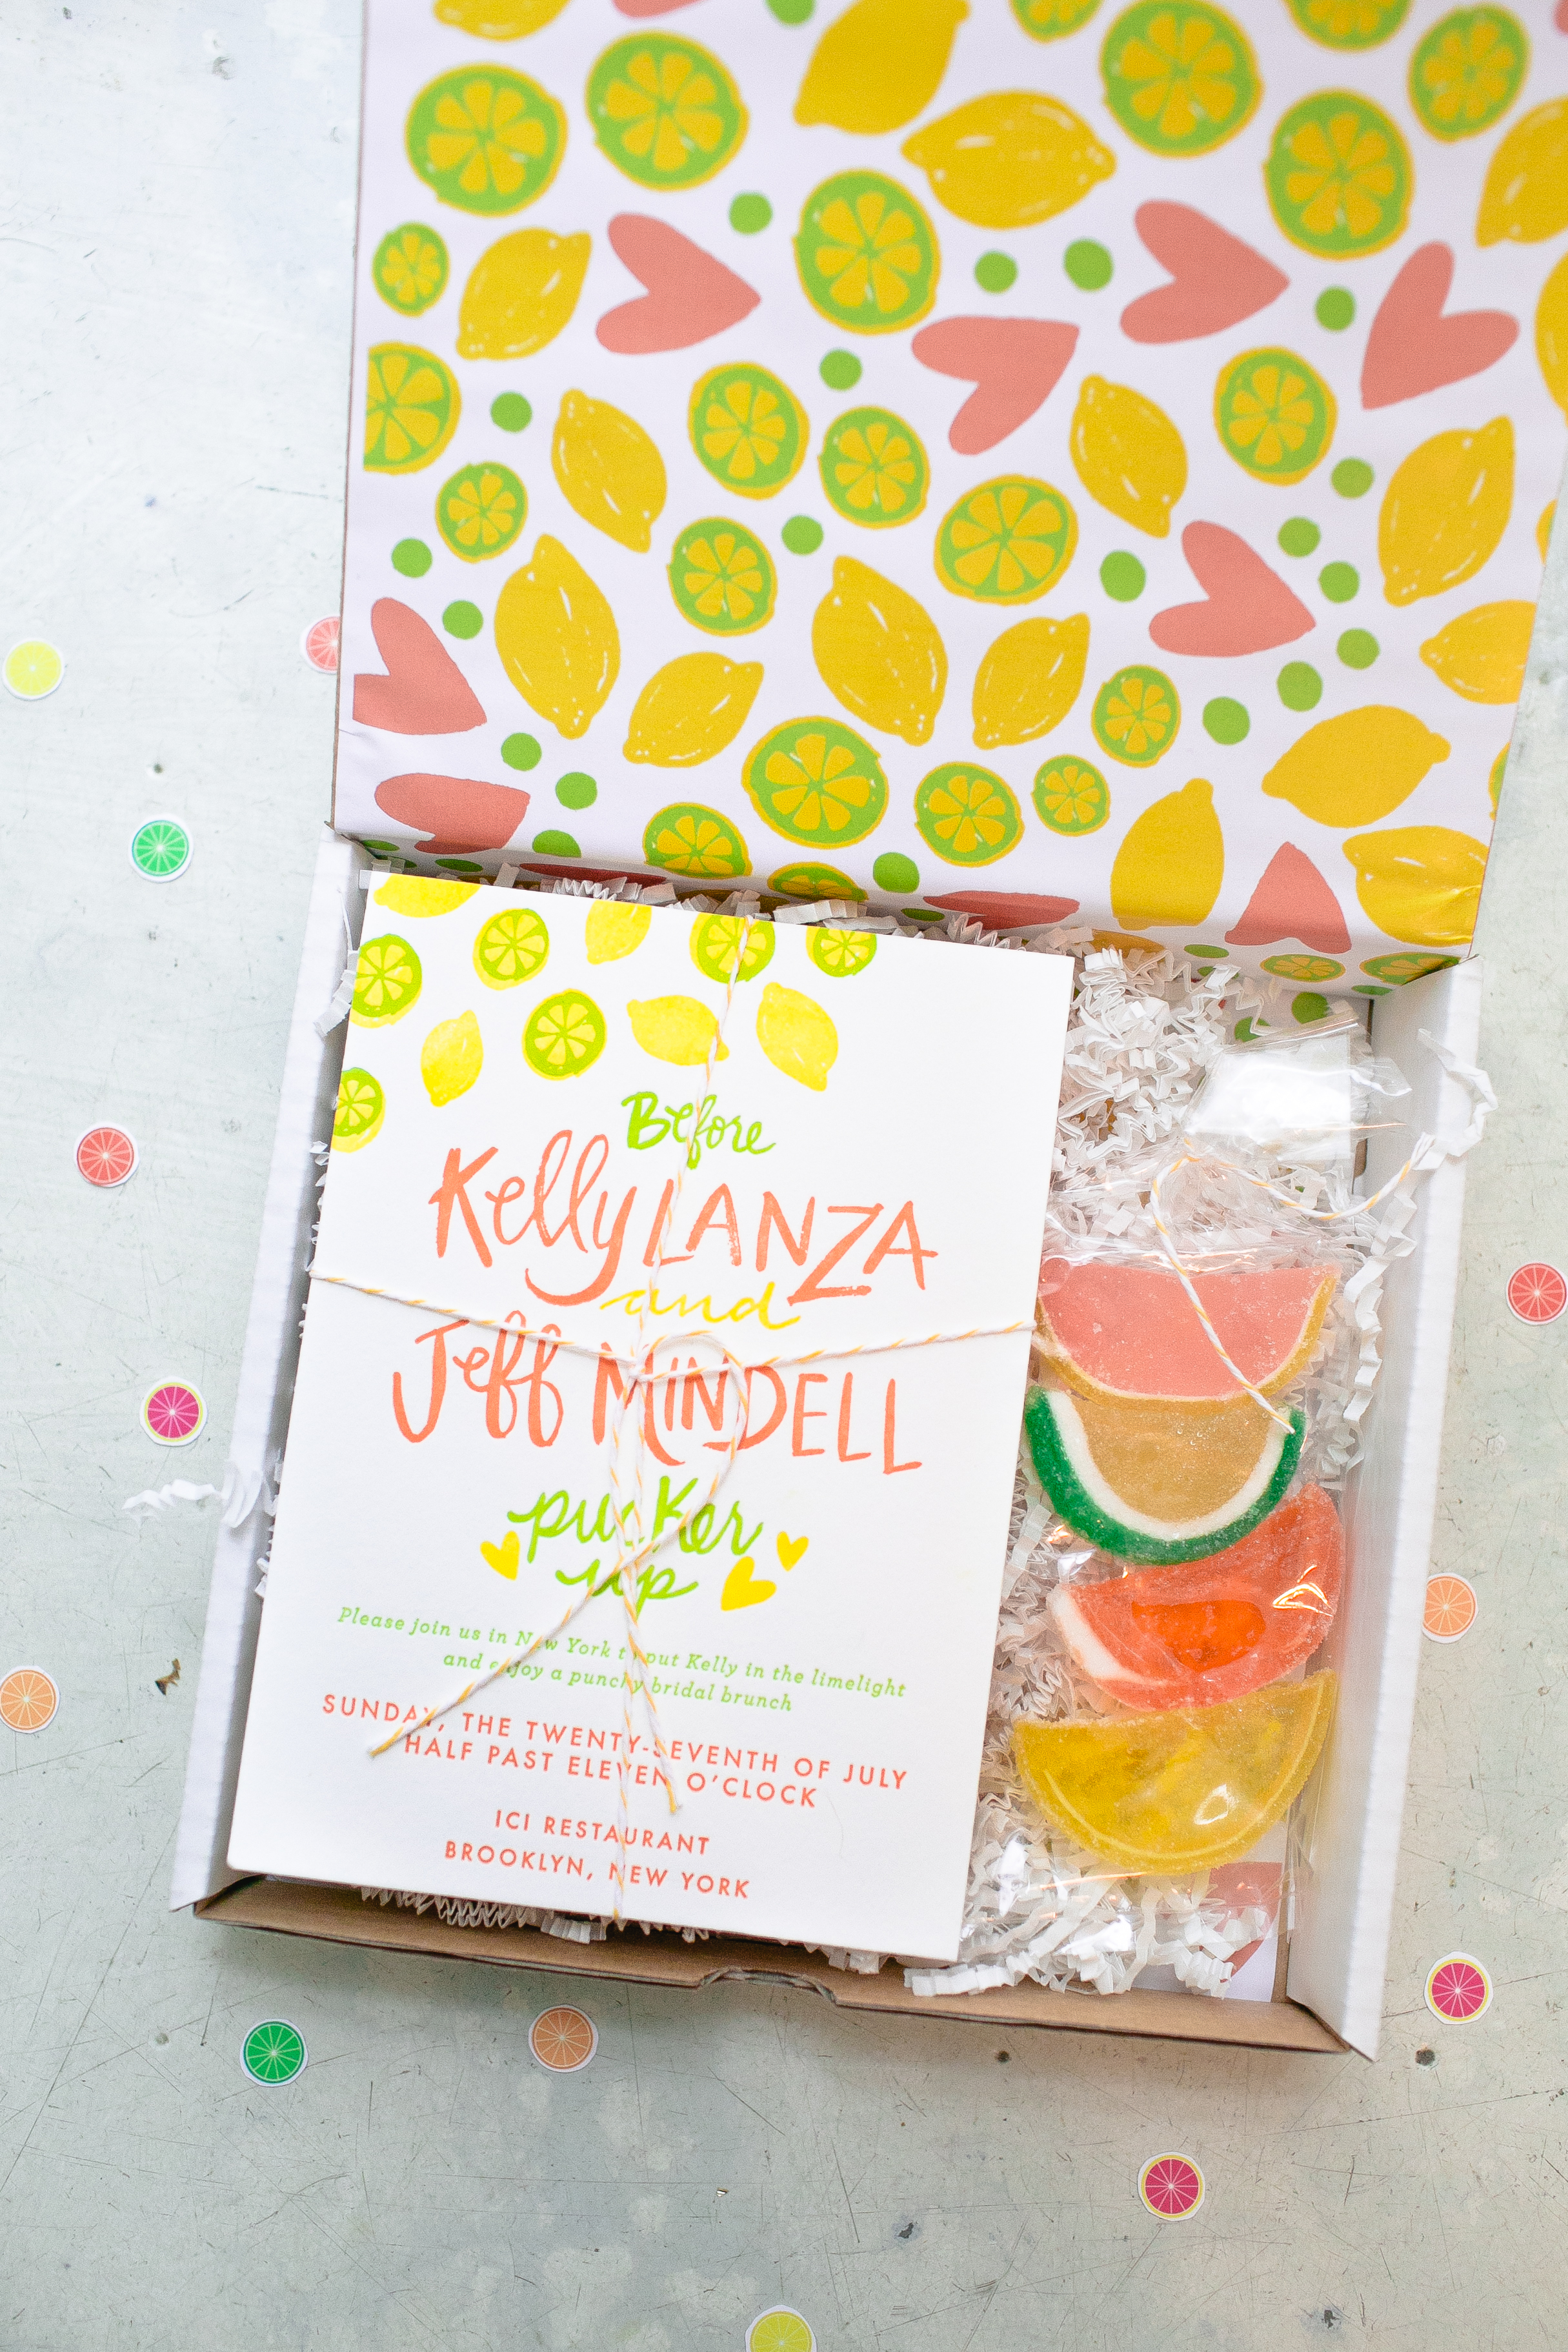 01-bellwether-events-you-look-lovely-photography-9th-letter-press-citrus-inspired-pucker-up-theme-lemon-lime-grapefruit-orange-bridal-shower